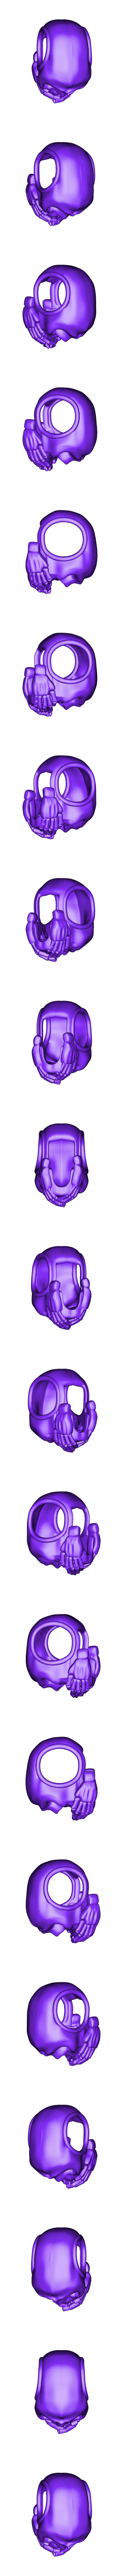 s1.stl Download free STL file three wise skull • 3D print object, Janusz